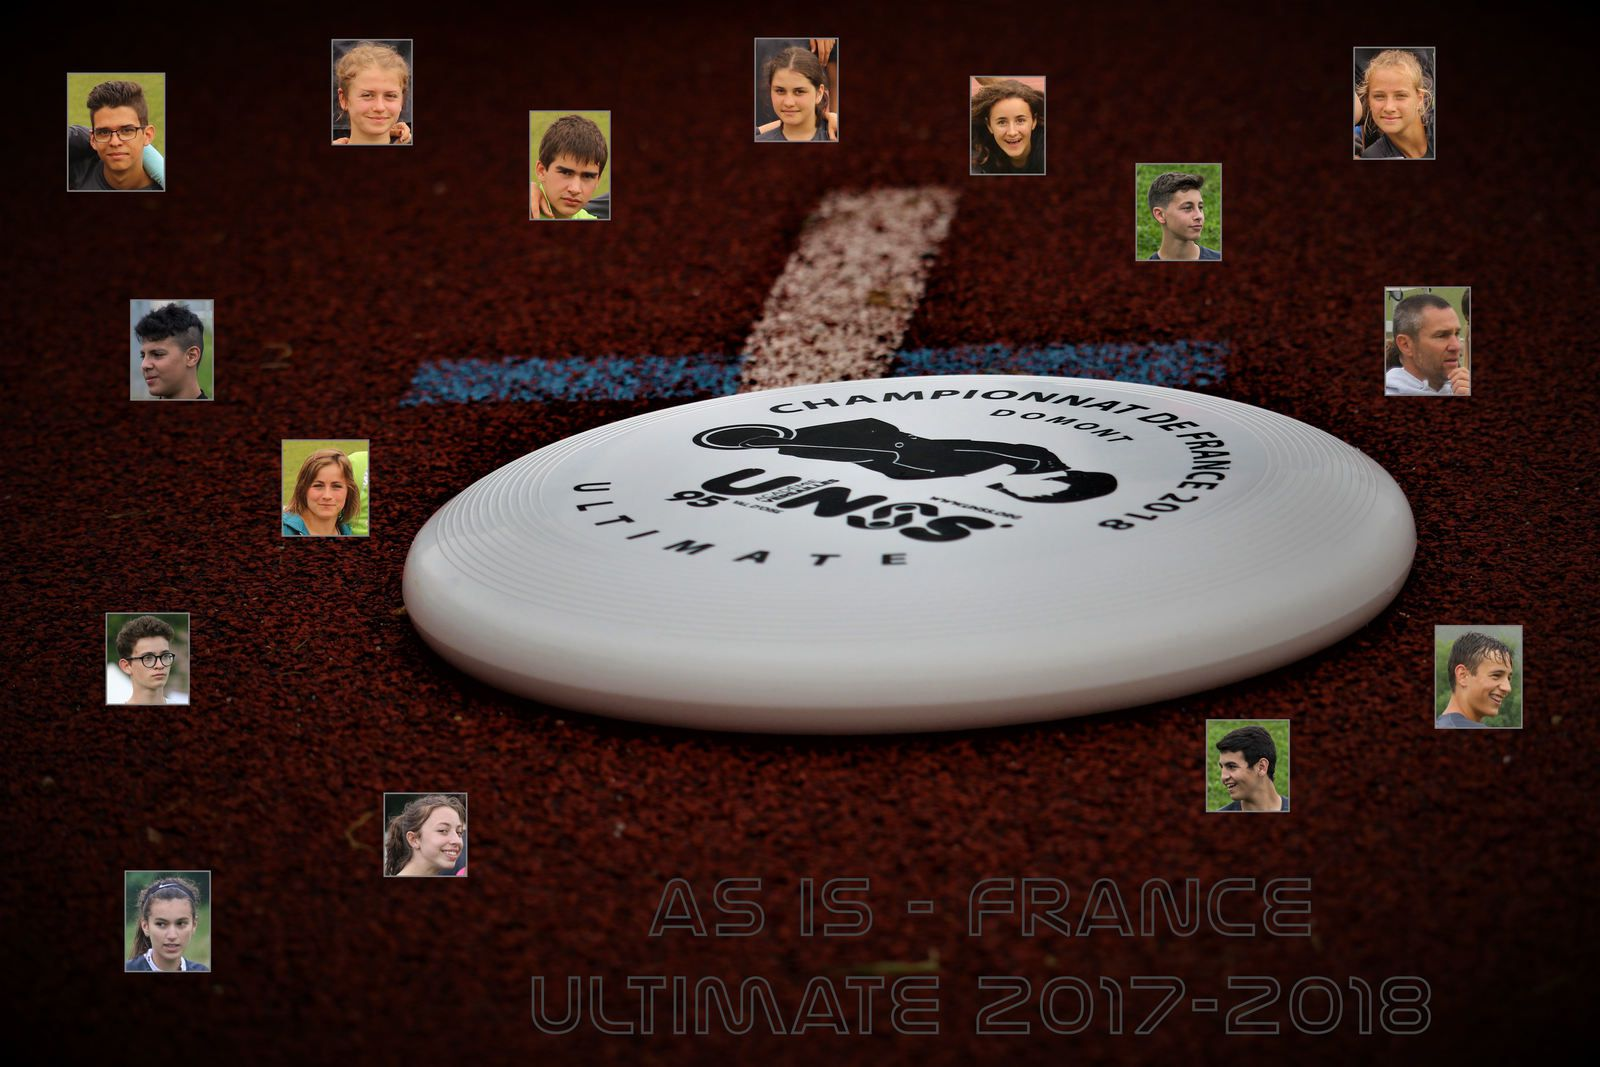 CHAMPIONNAT FRANCE ULTIMATE 2017/2018